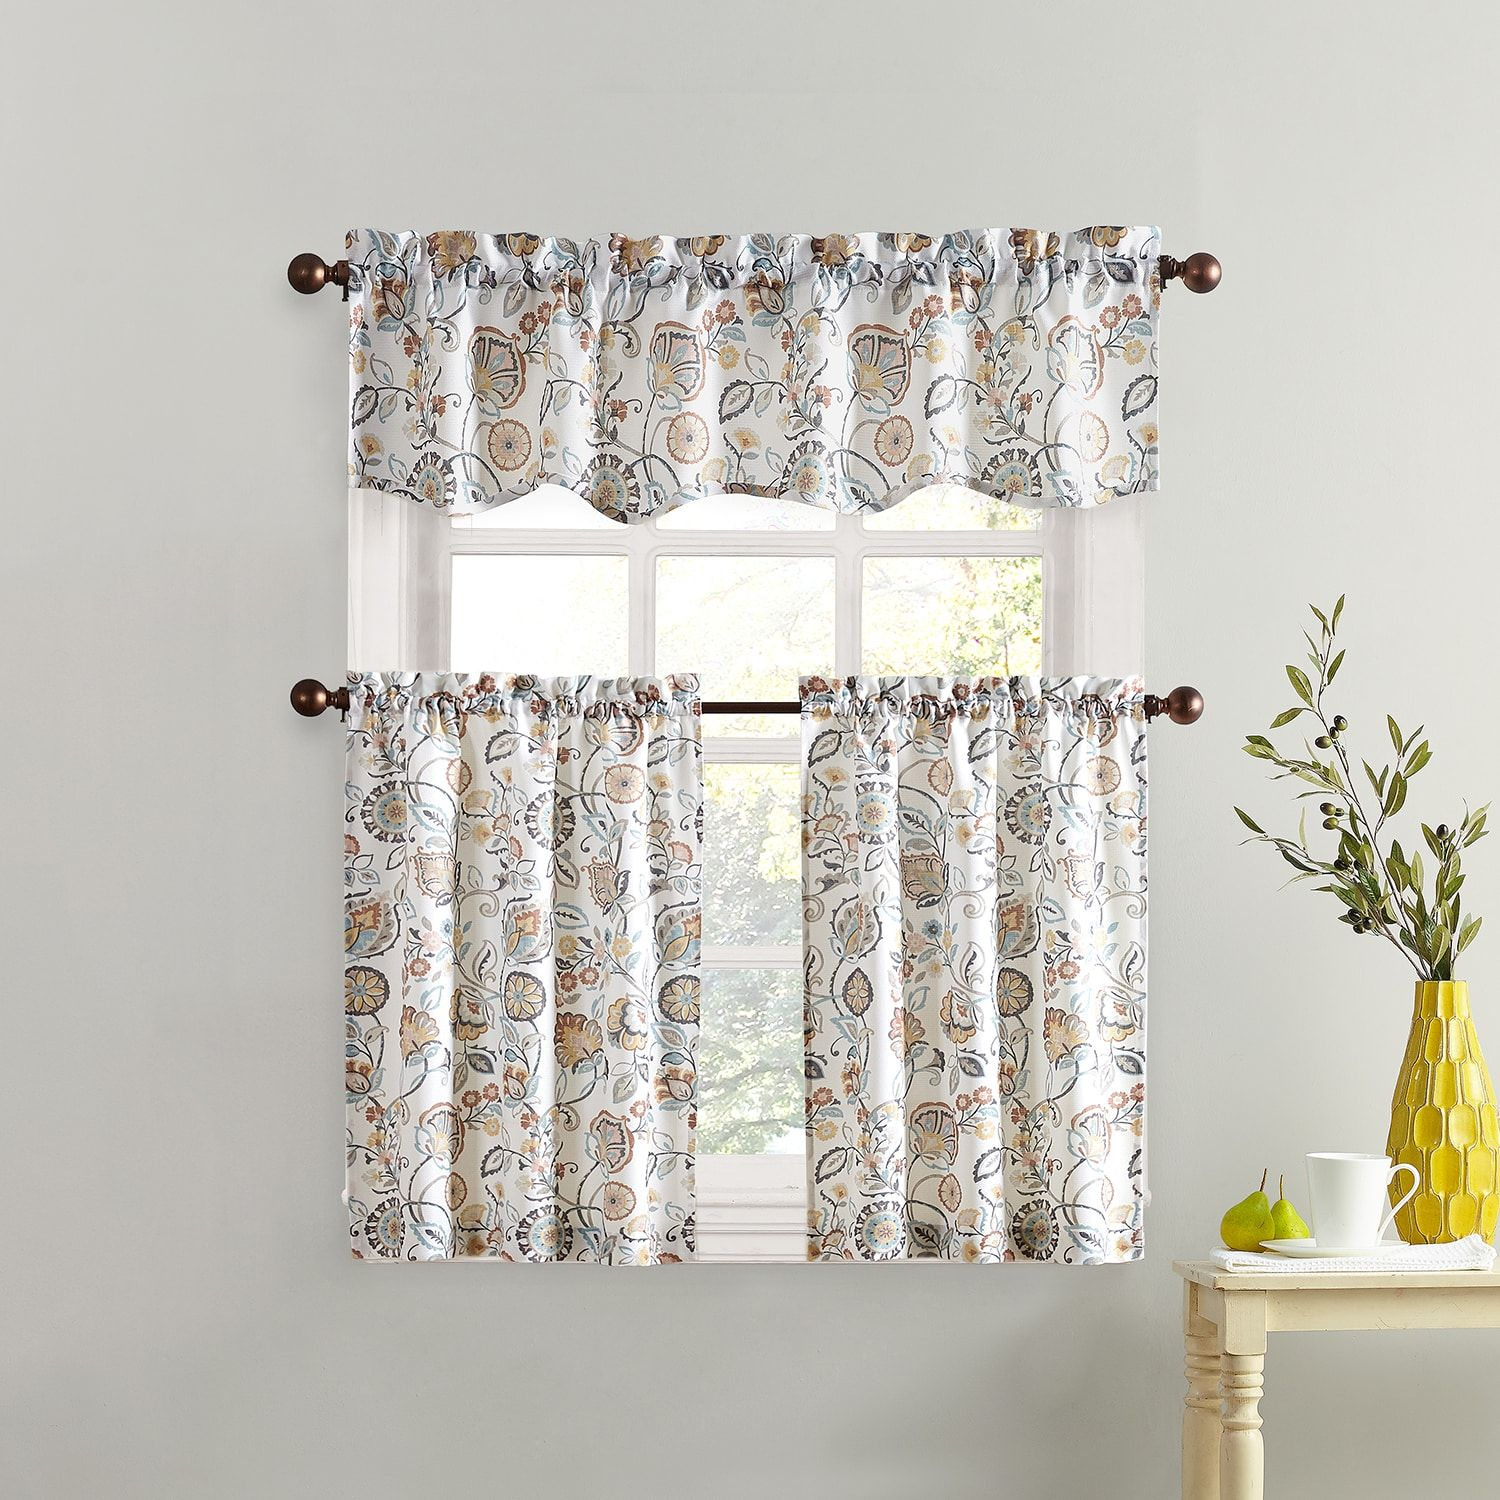 living bath kitchen adorn any cafe story curtains design of bed valance window treatments size two furniture home with and bedroom beyond for coral coverings in your moroccan windows gray drapes cheap modern large curtain room box full valances